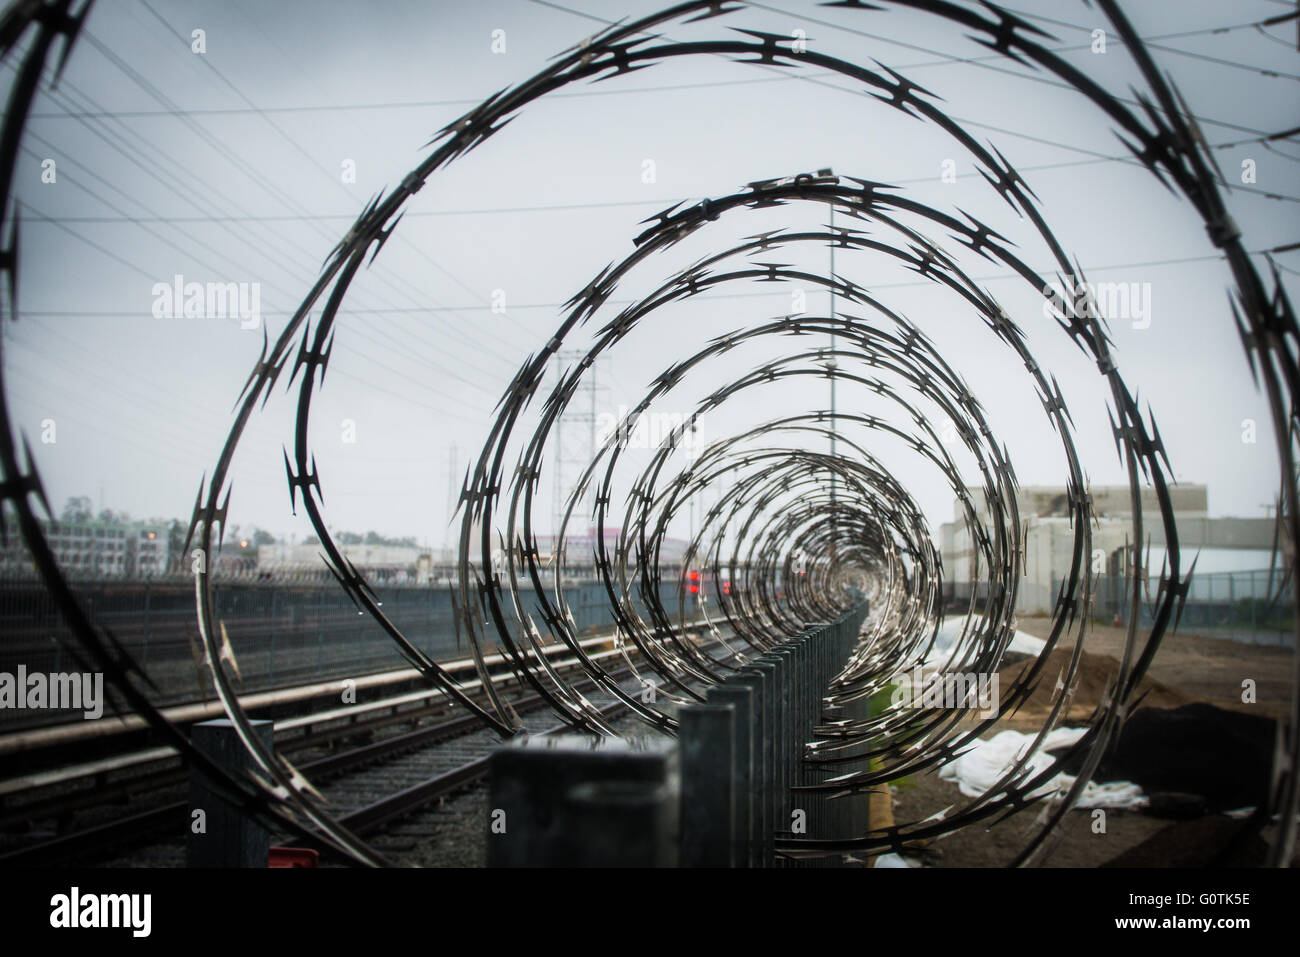 Razor wire in concentric circles on fence - Stock Image